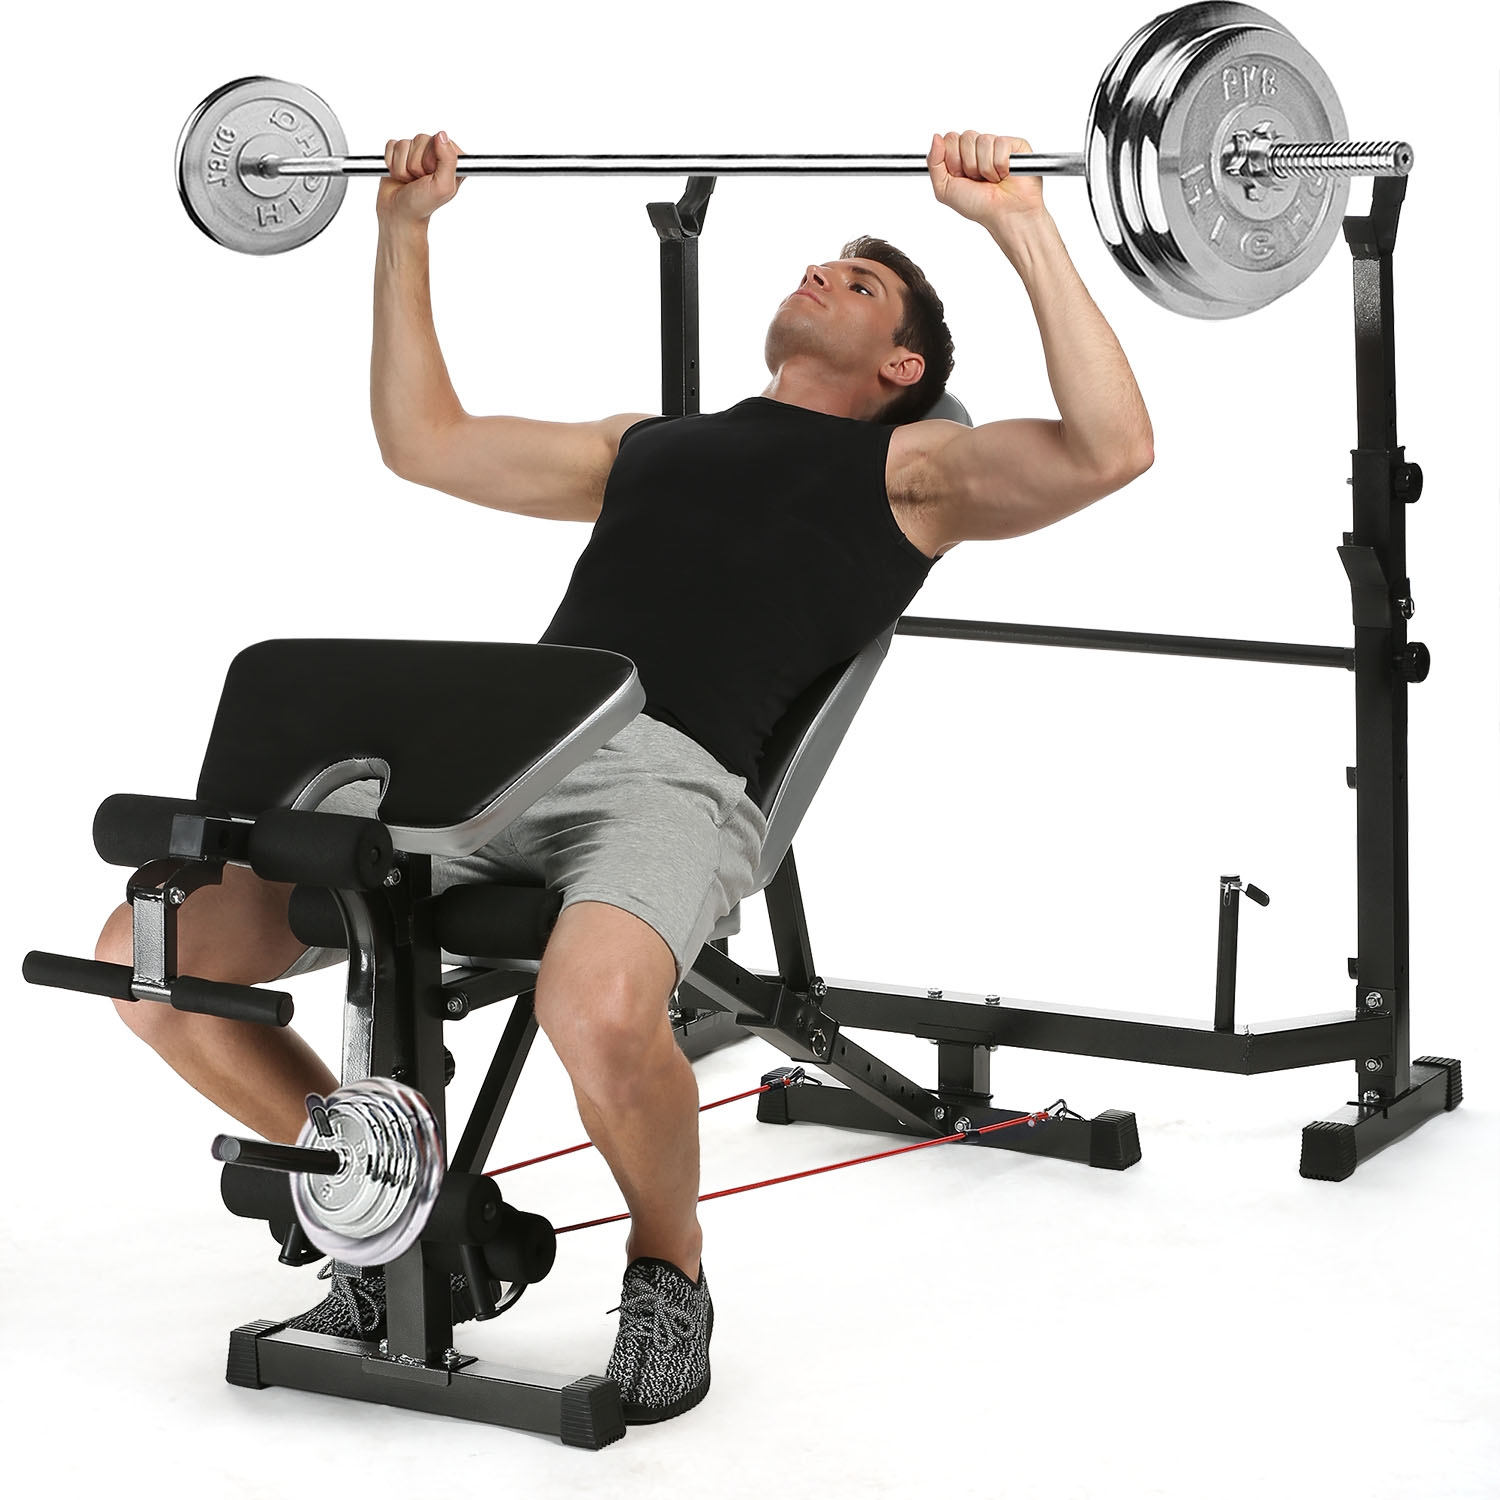 New Olympic Weight Bench Set Press Fitness Home Gym Worko...